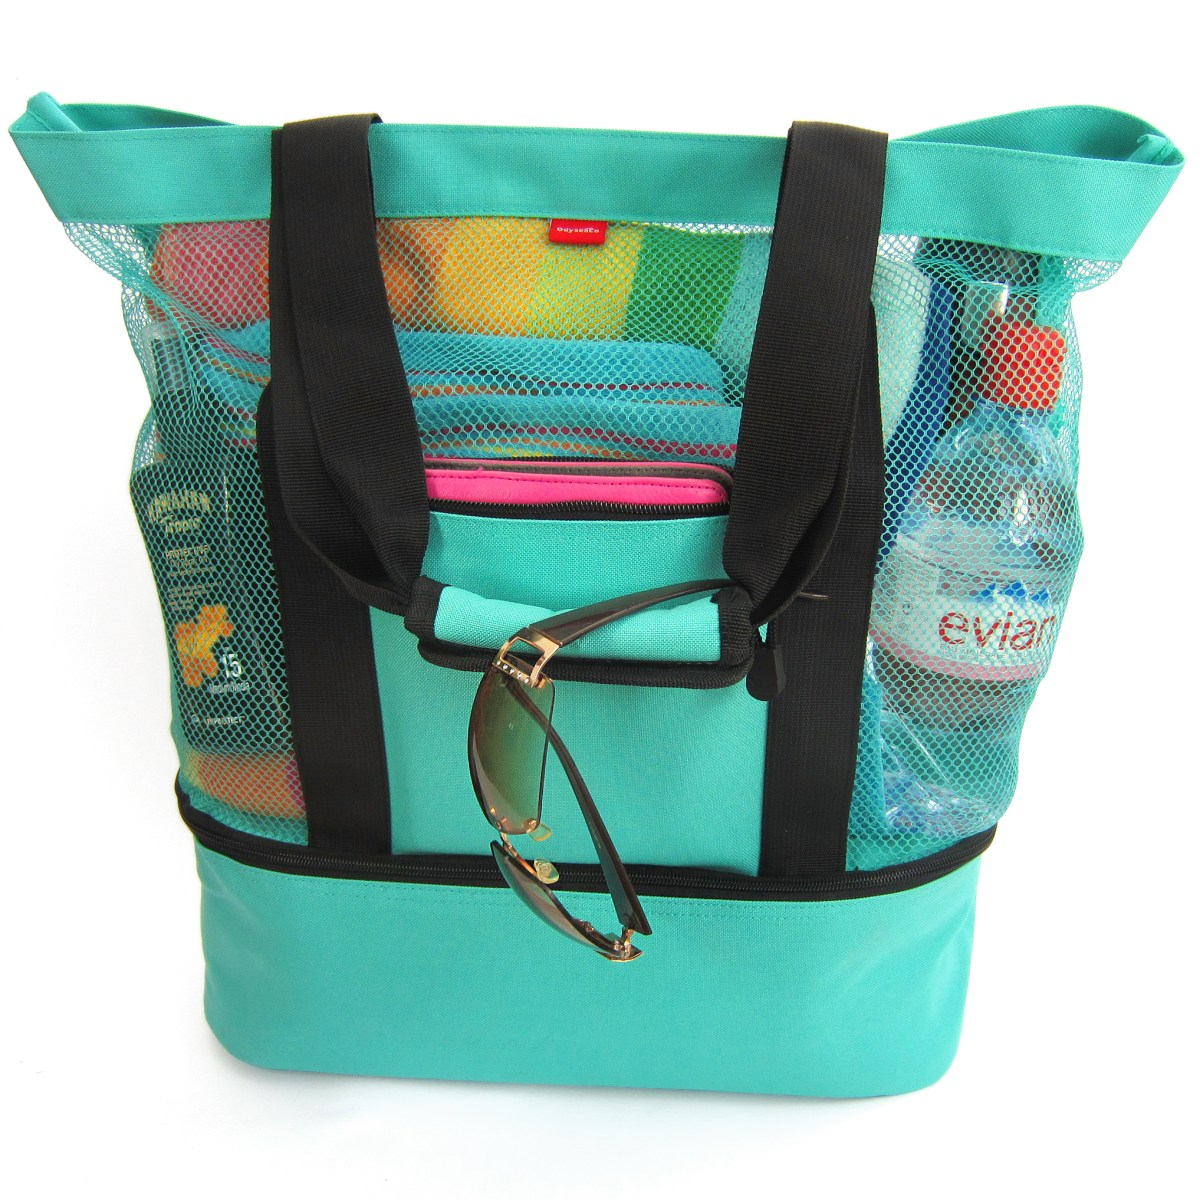 odyseaco mesh beach bag cooler